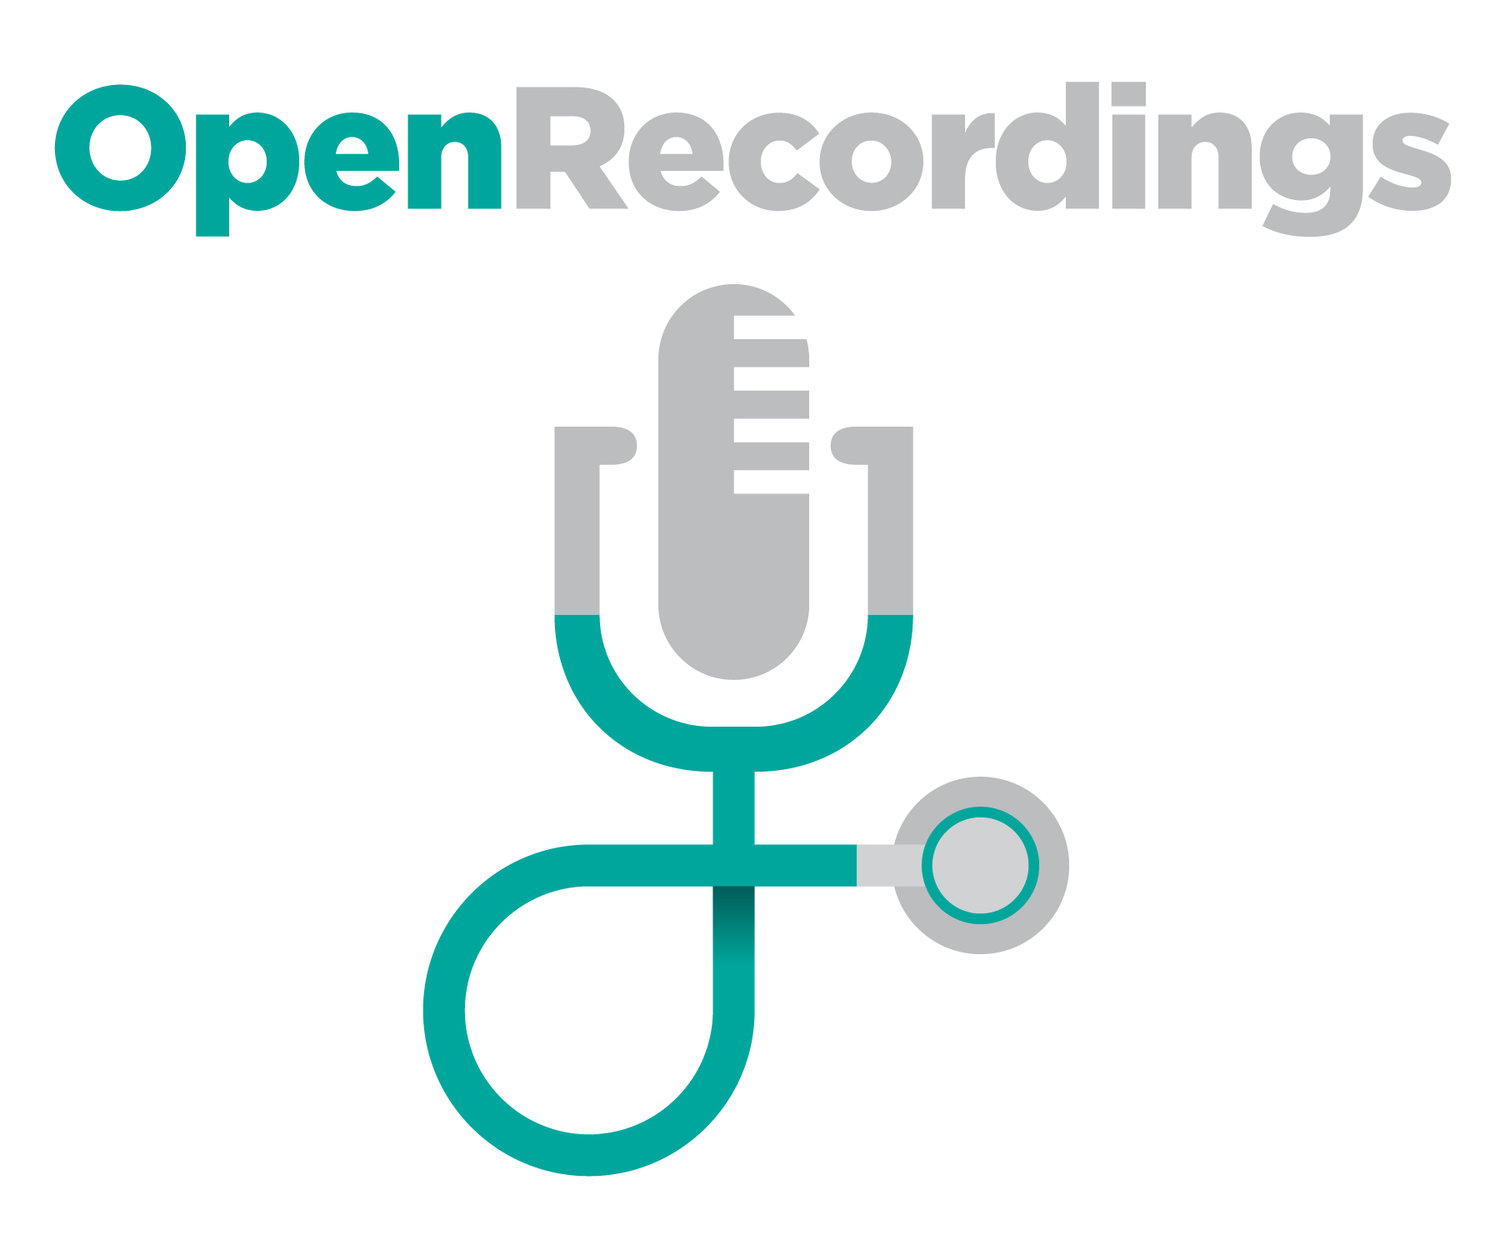 Open Recordings